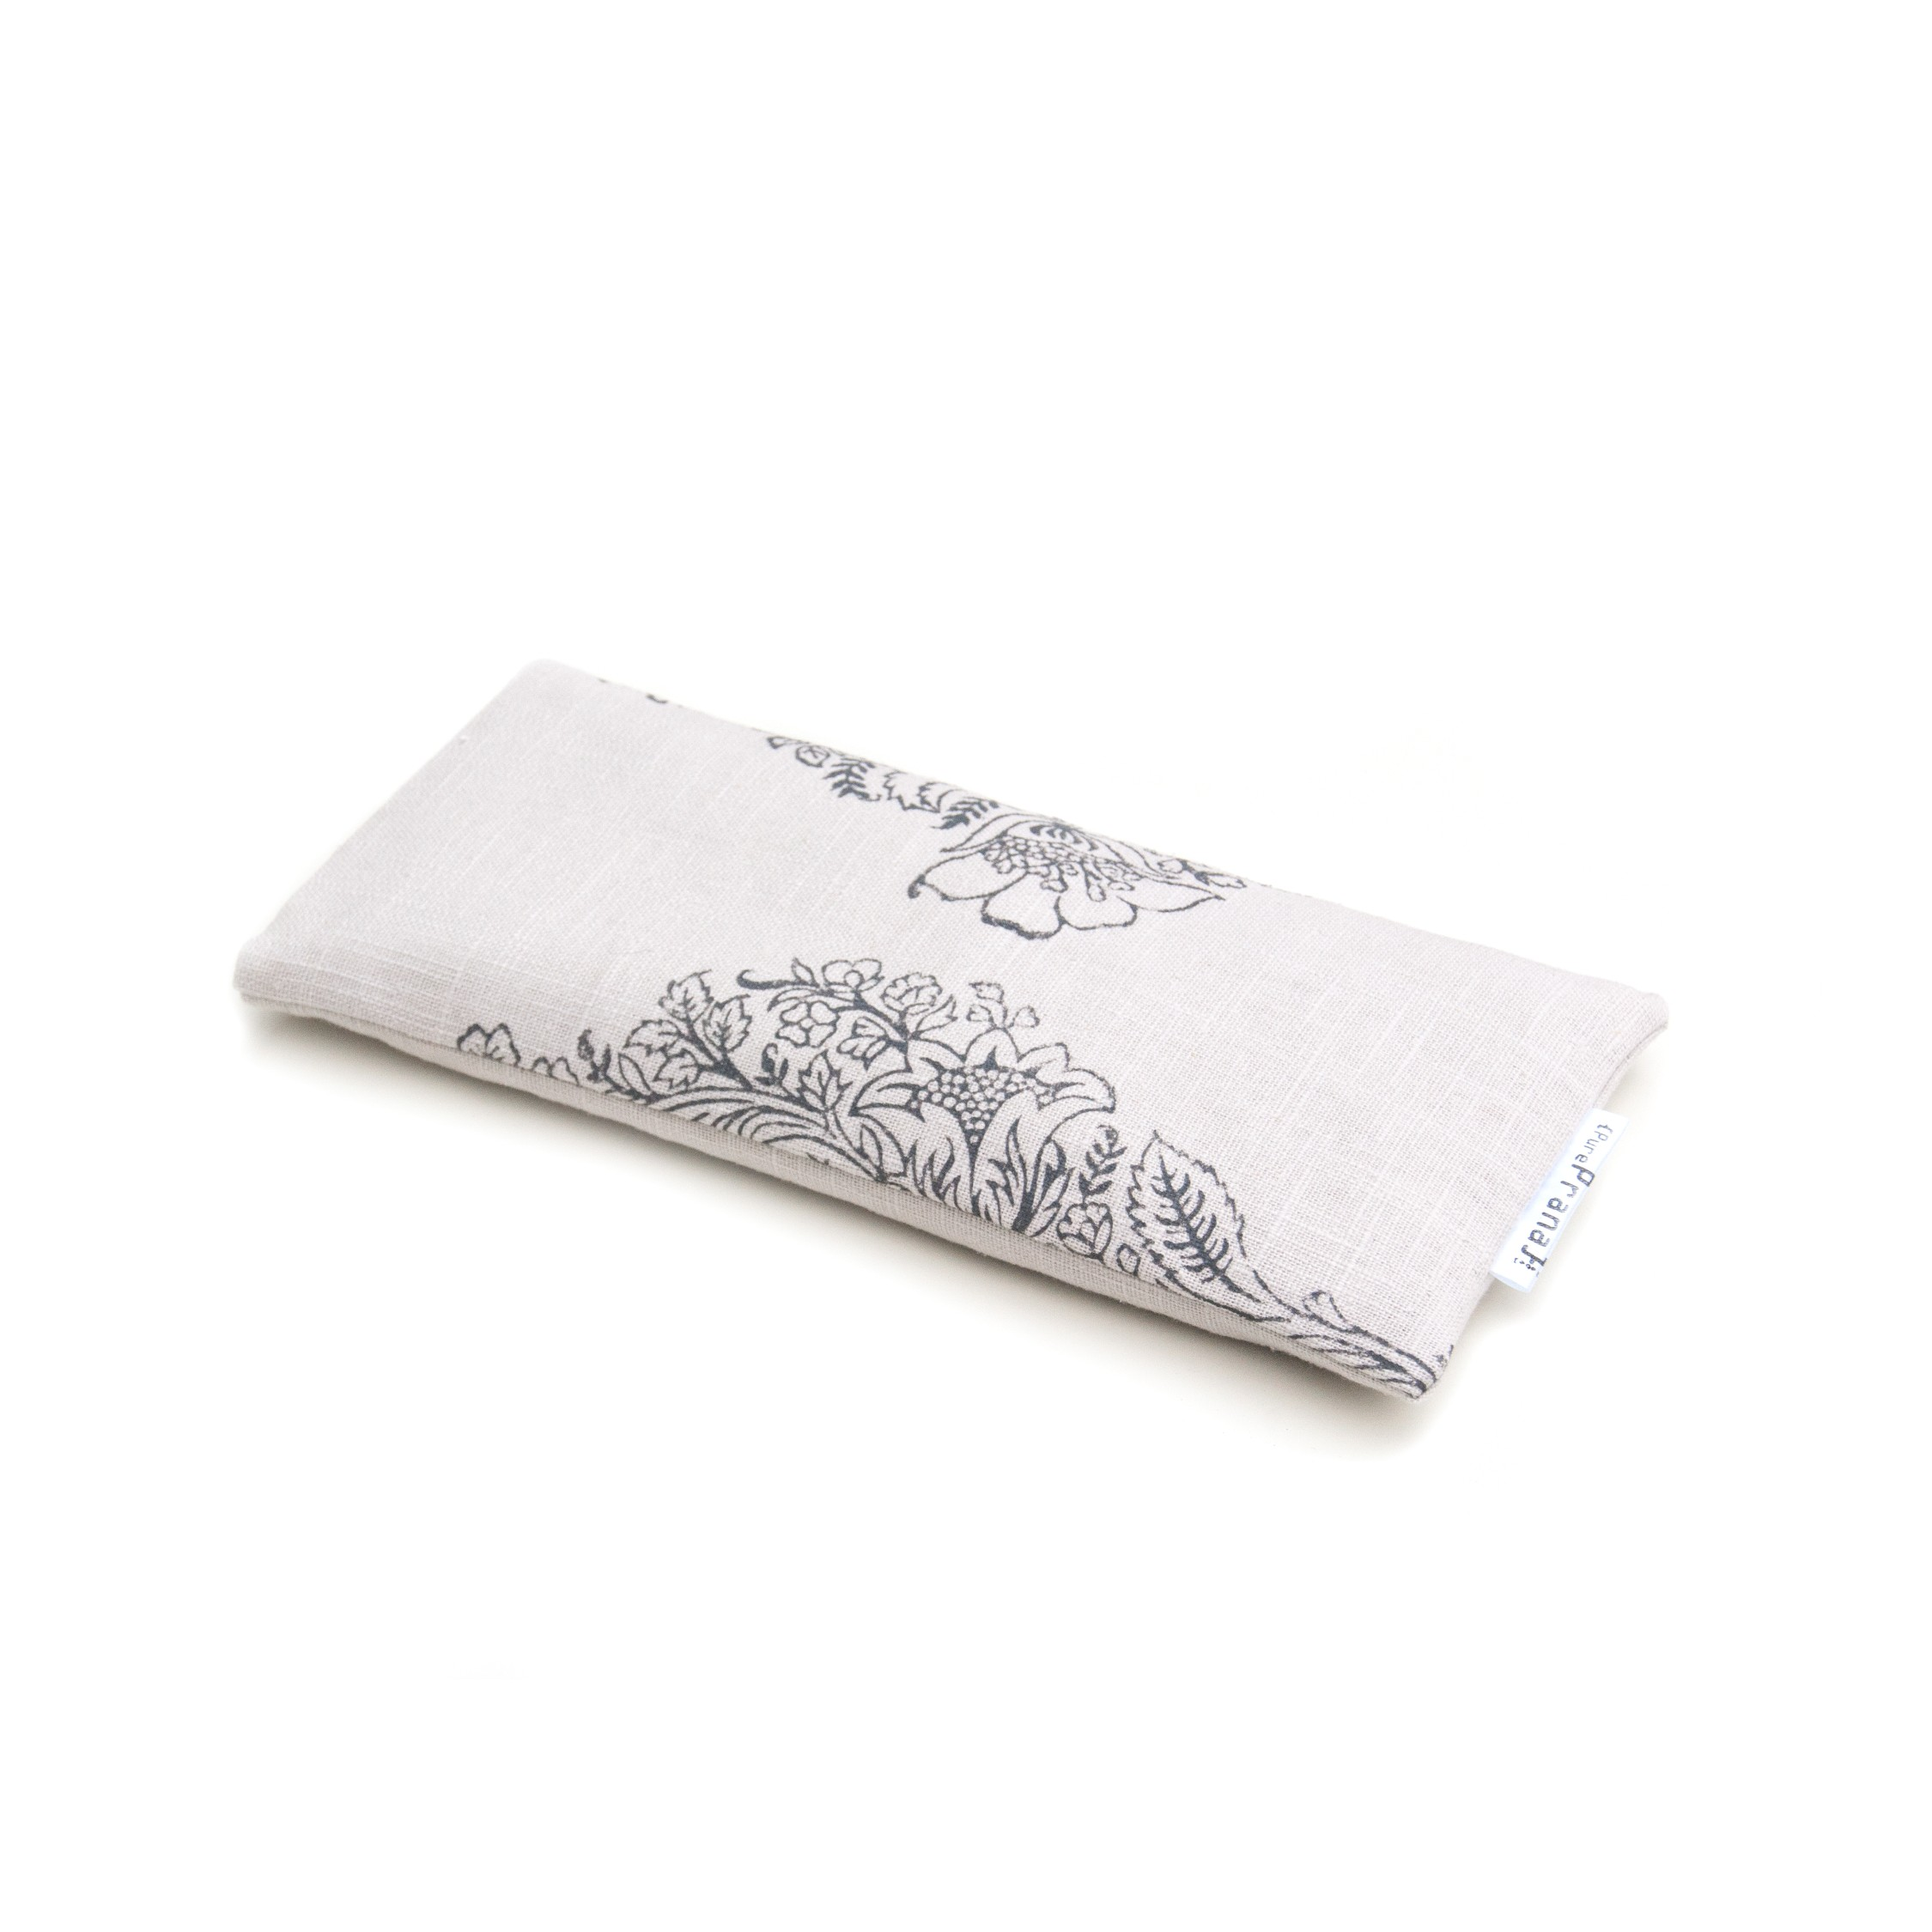 Amethyst filled lavender eye pillow by Pure Prana Label